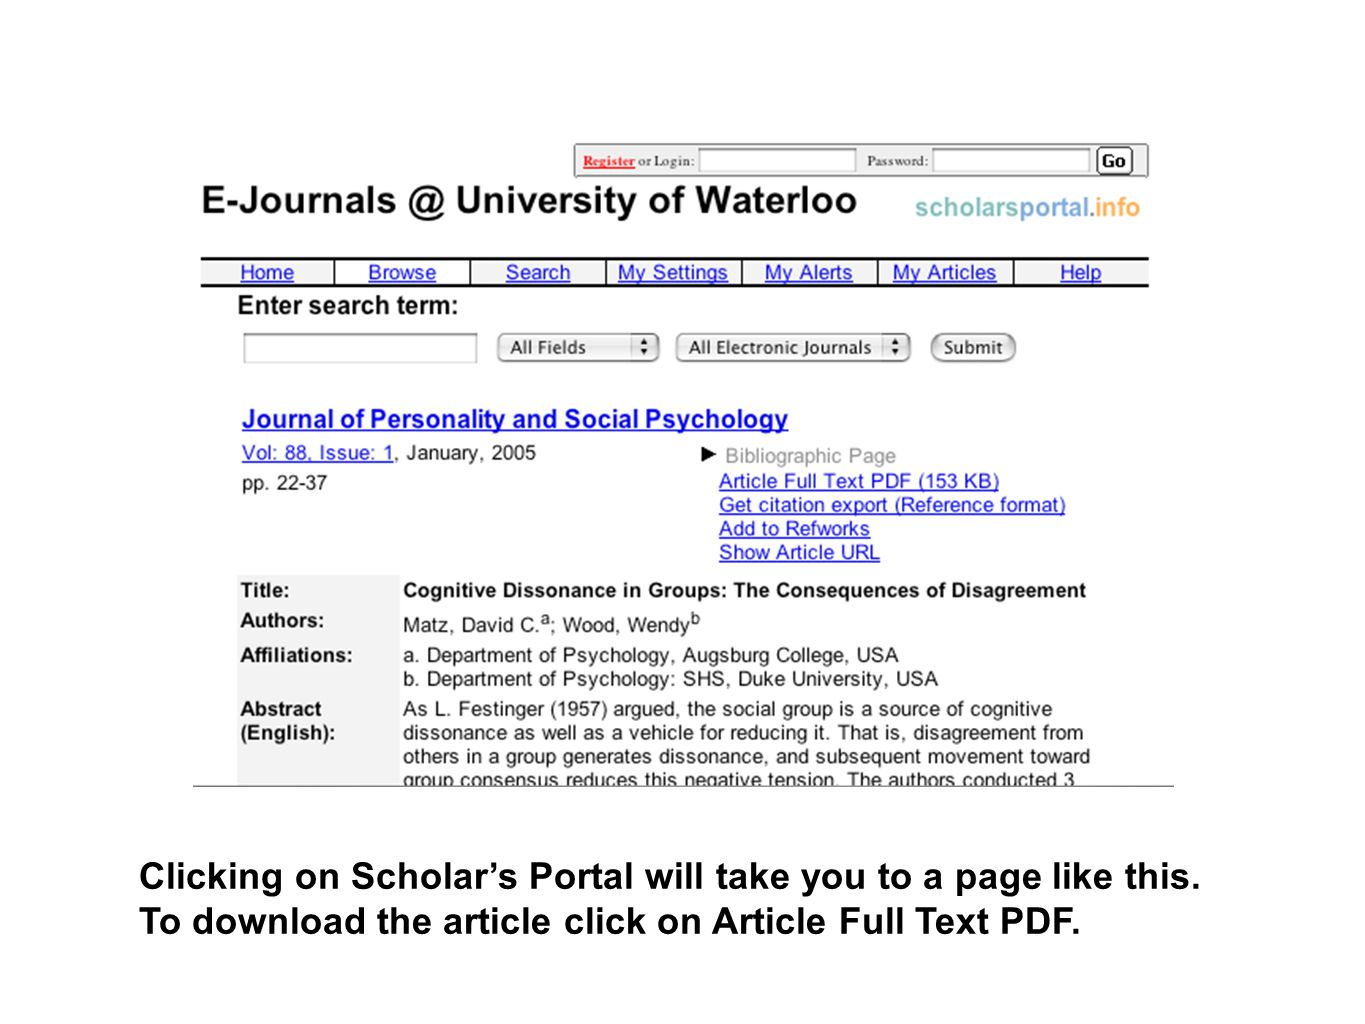 Clicking on Scholar's Portal will take you to a page like this. To download the article click on Article Full Text PDF.